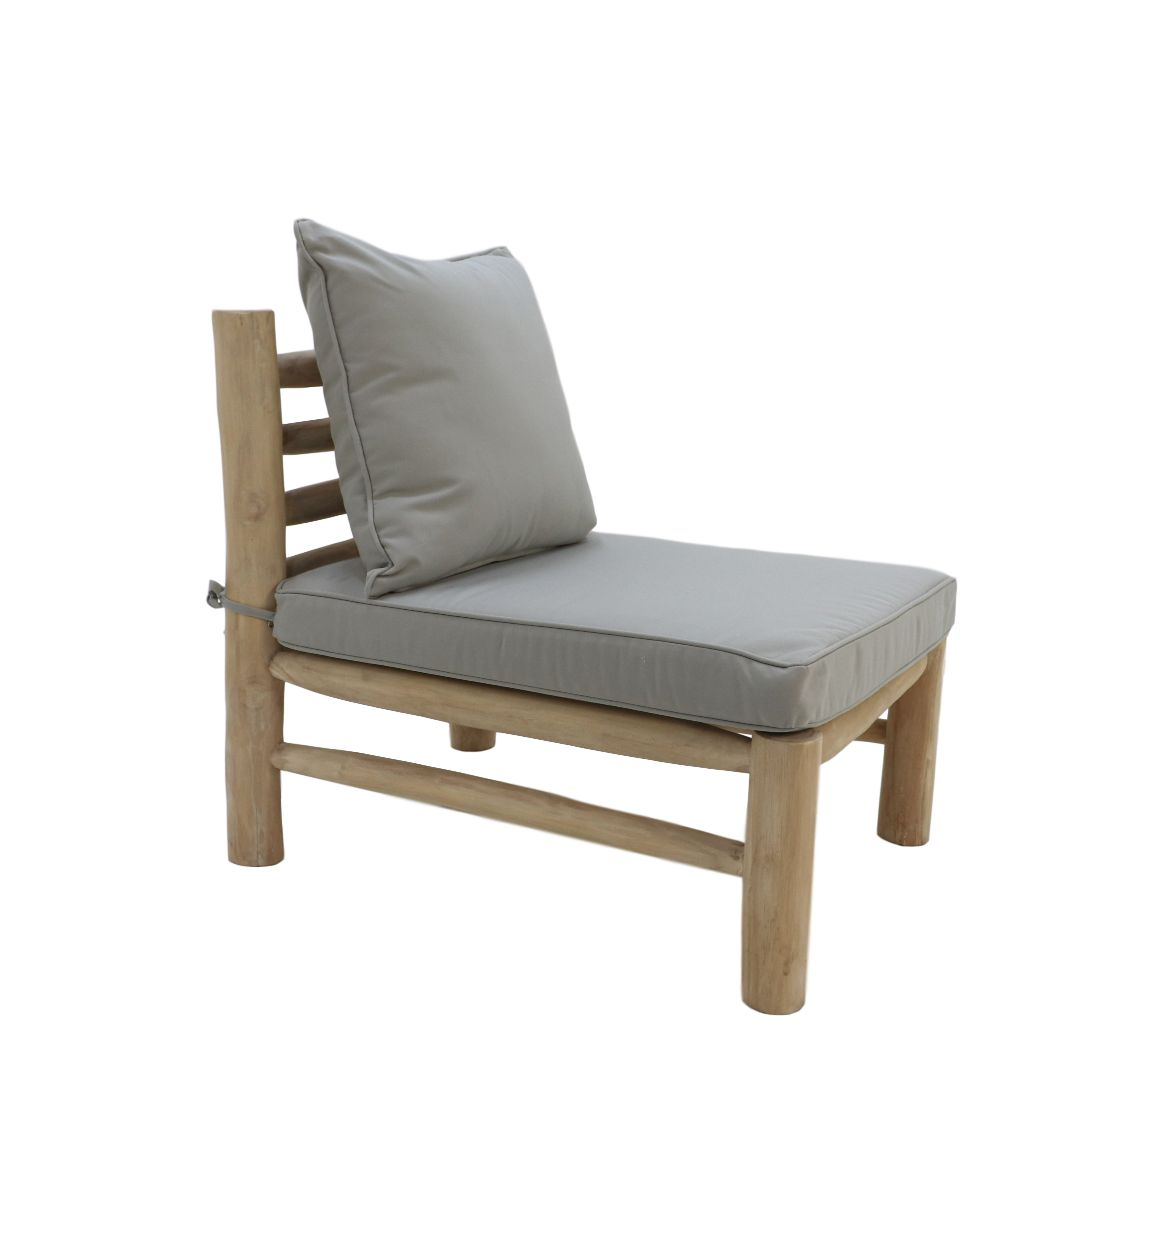 Chair bench incl. kussens - 80x60x72 - Creme - Teak/Unfinish